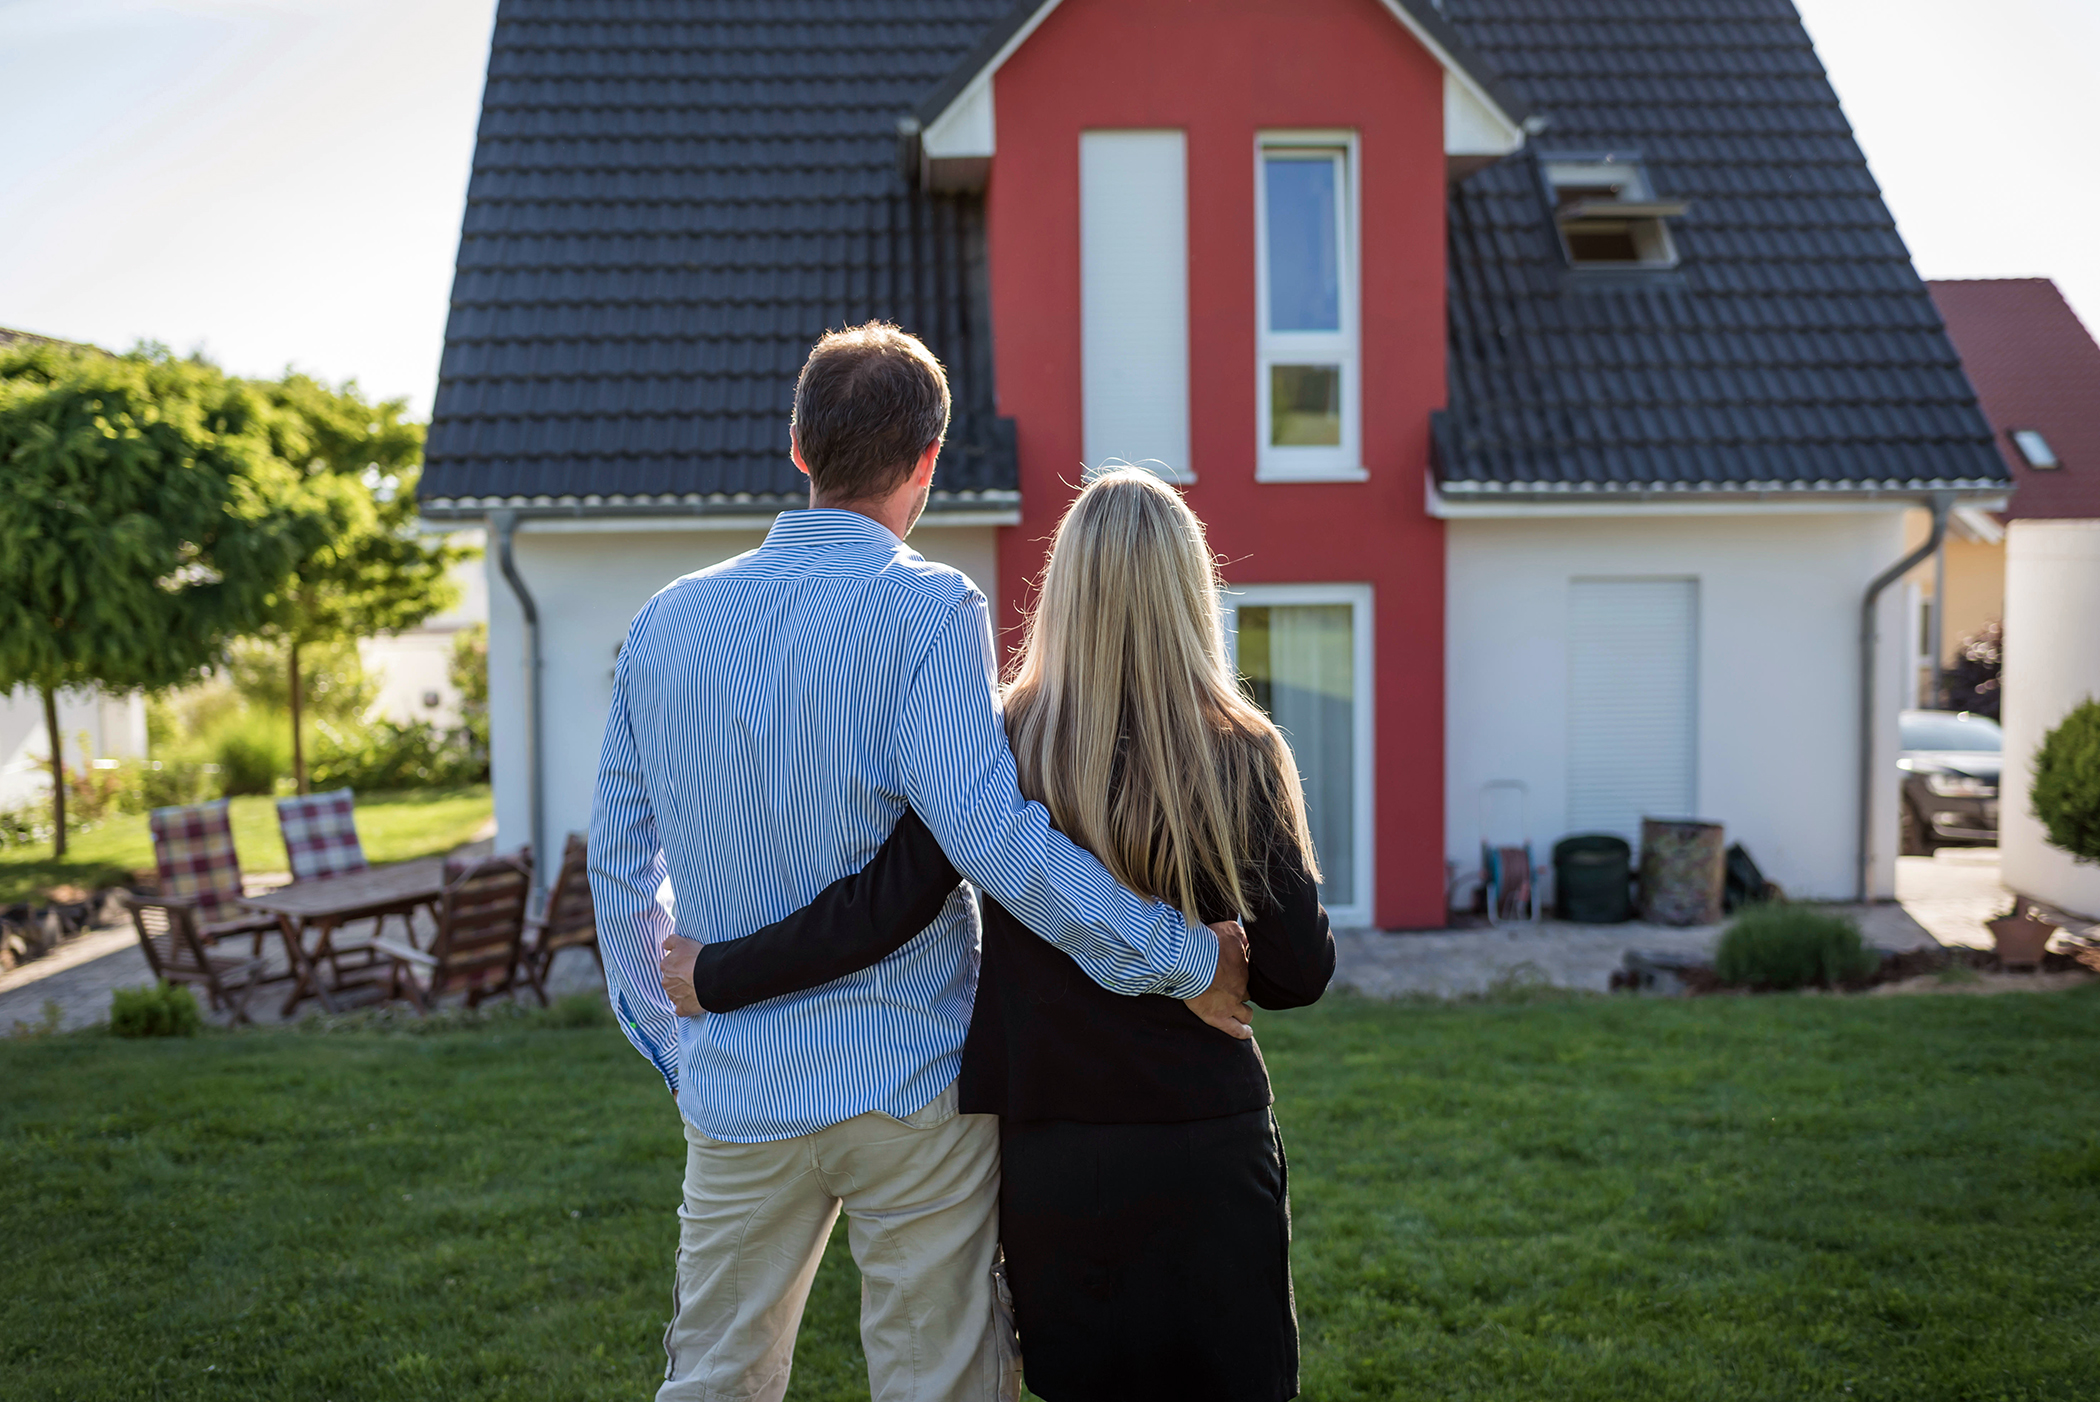 Quick Things to Know Before Selecting a Property Agent